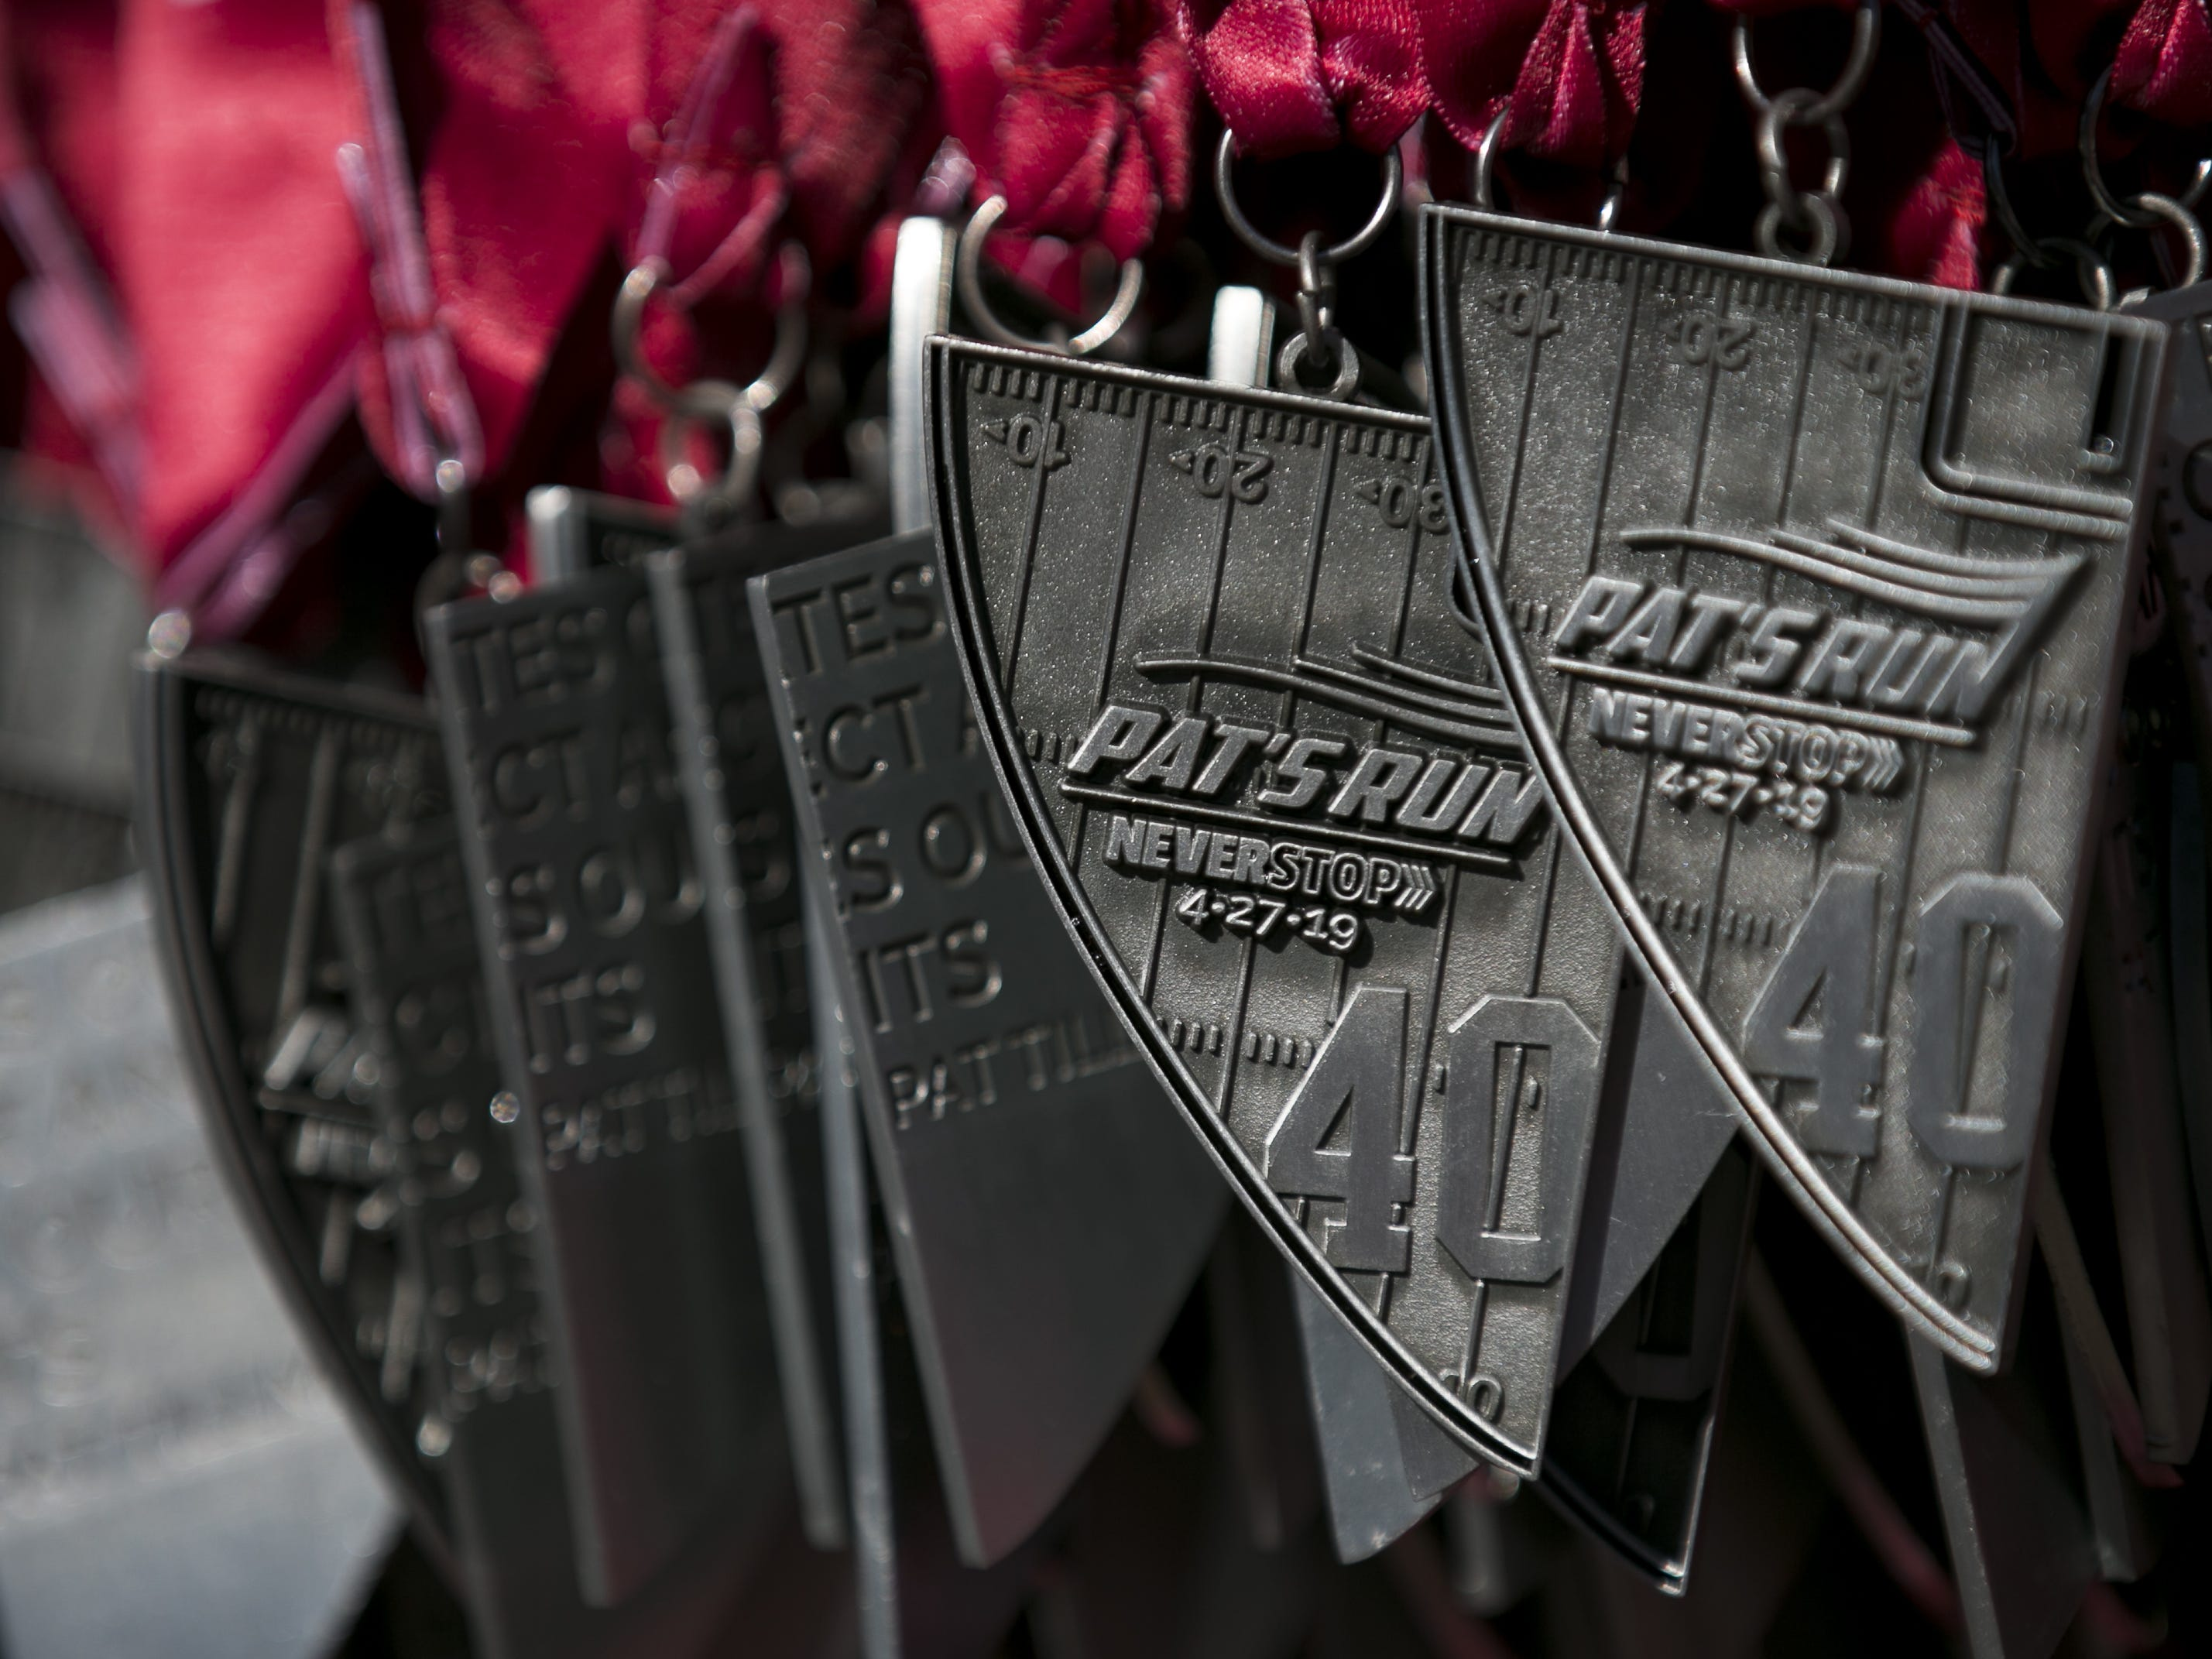 Medals for participants hang on a rack at Pat's Run 2019 in Tempe, Ariz. on April 27, 2019.